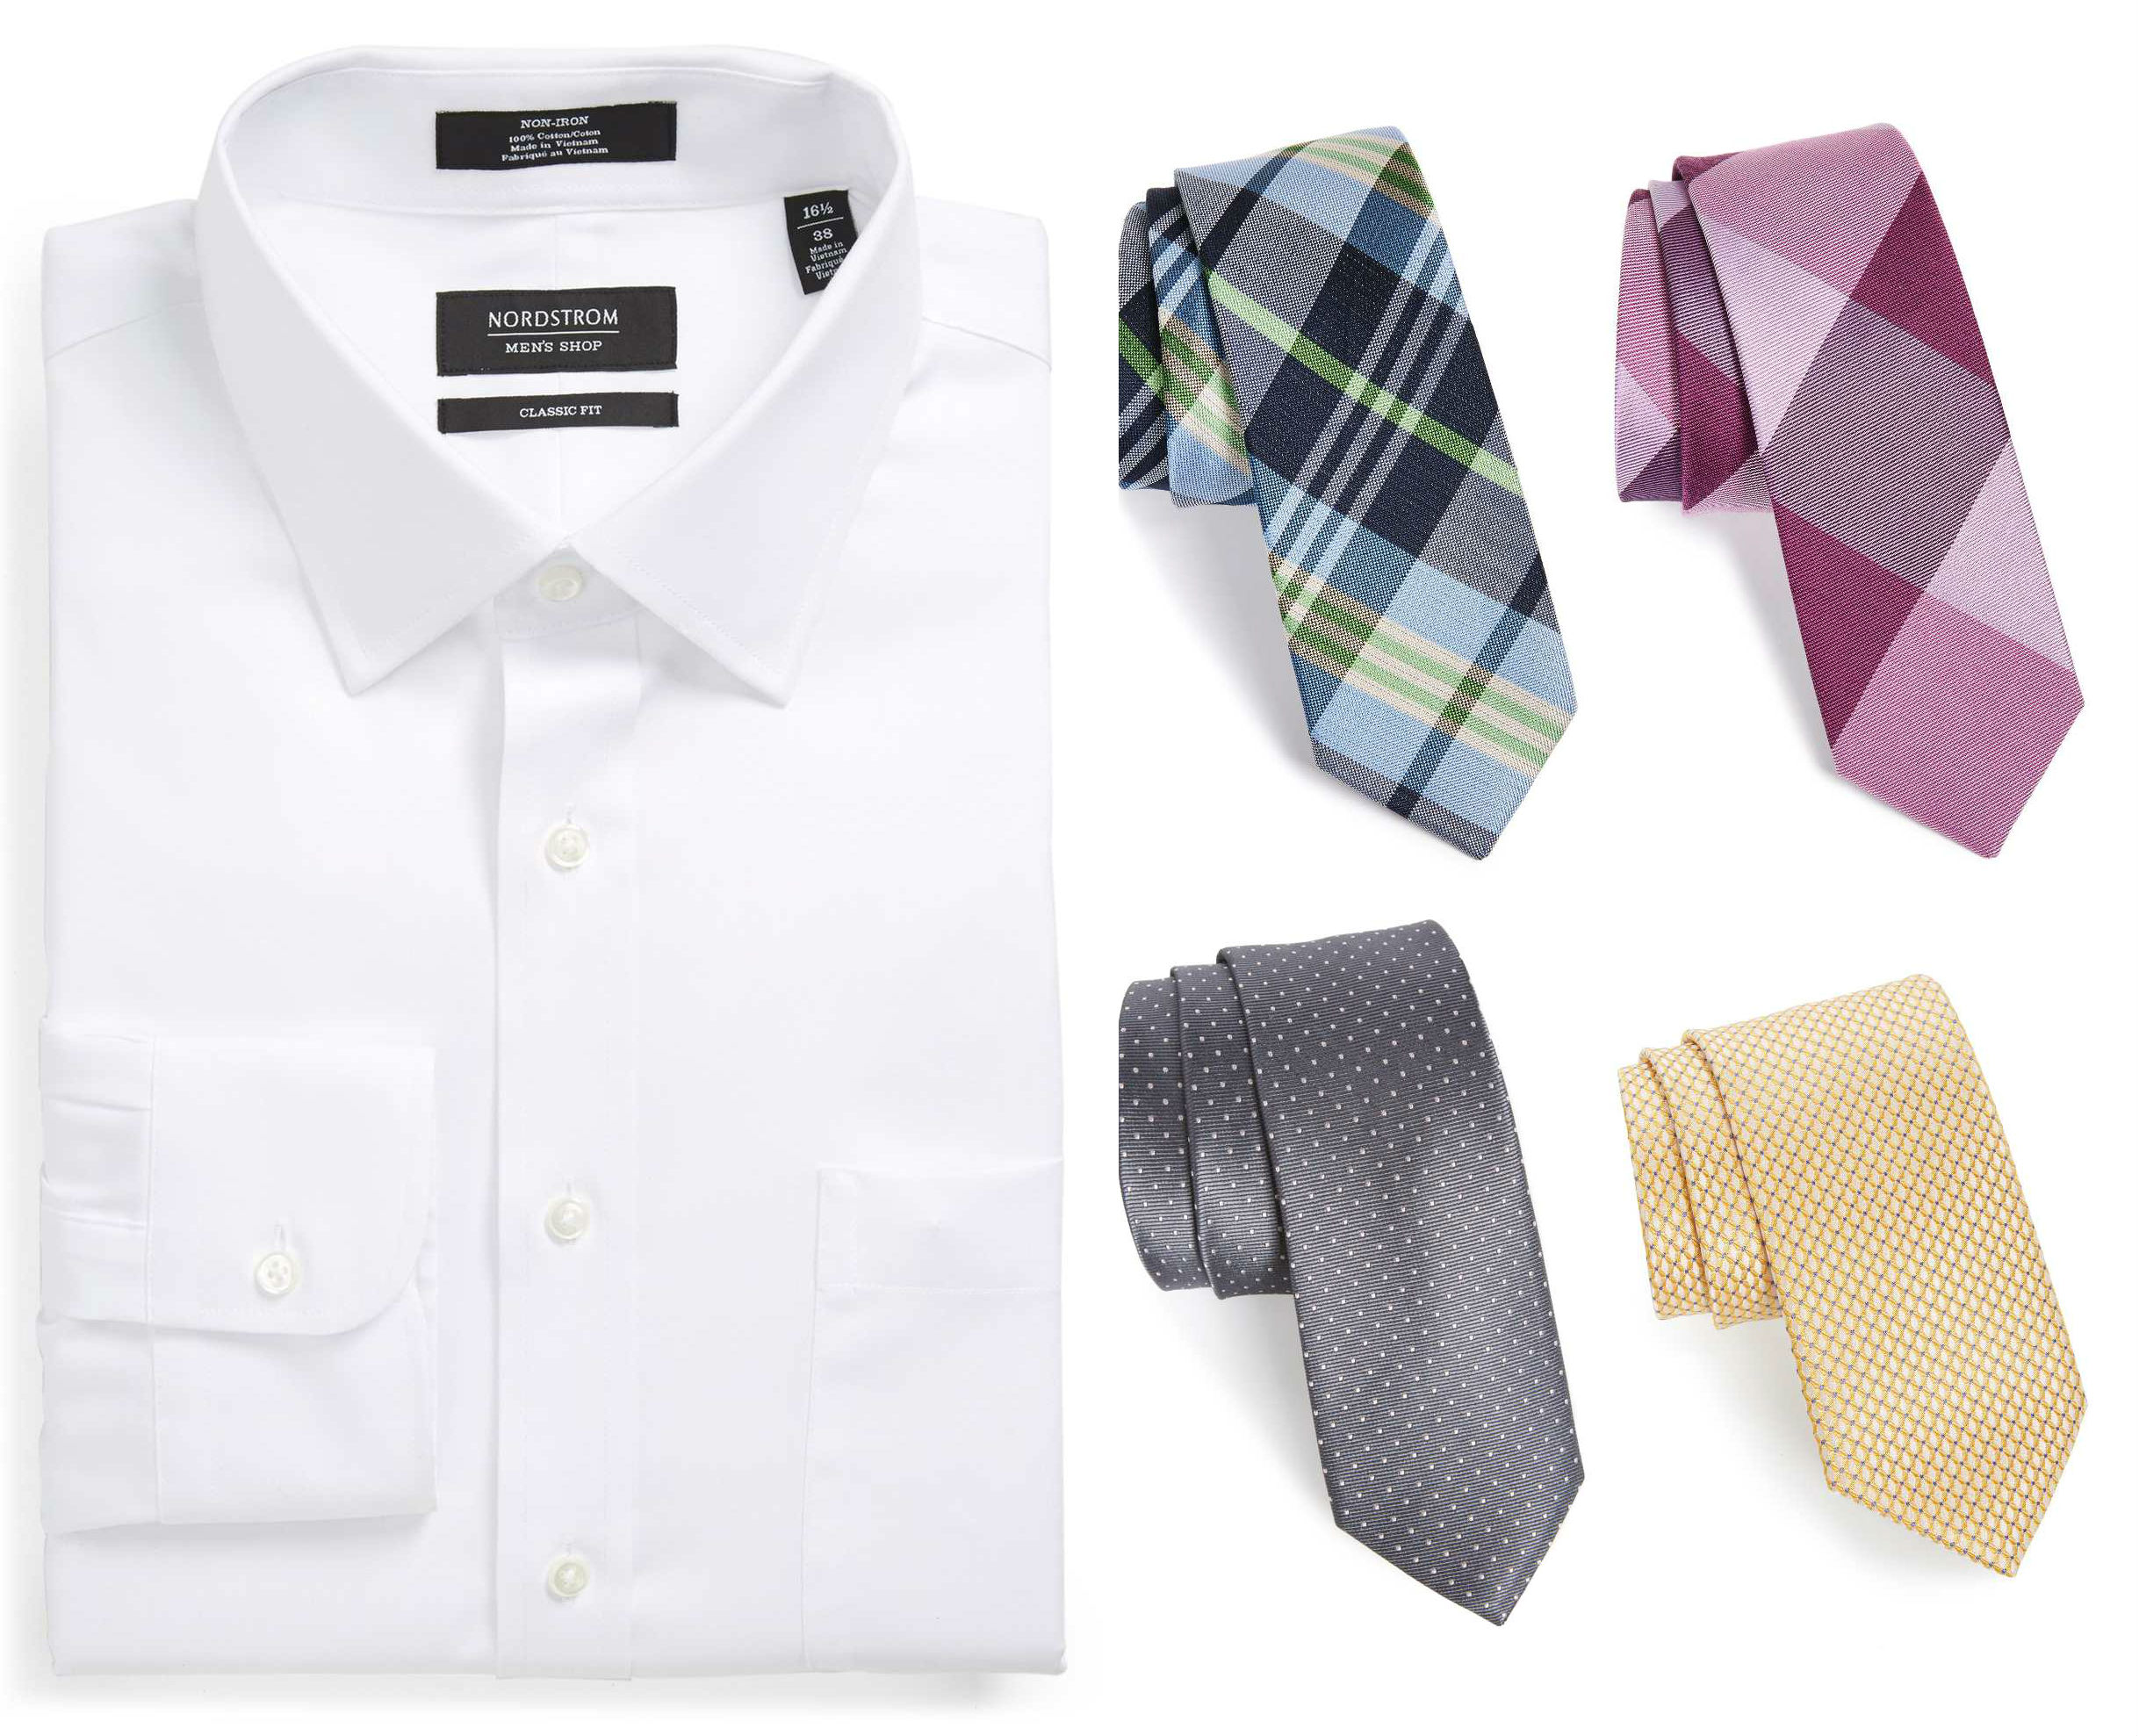 nordstrom men shirt tie